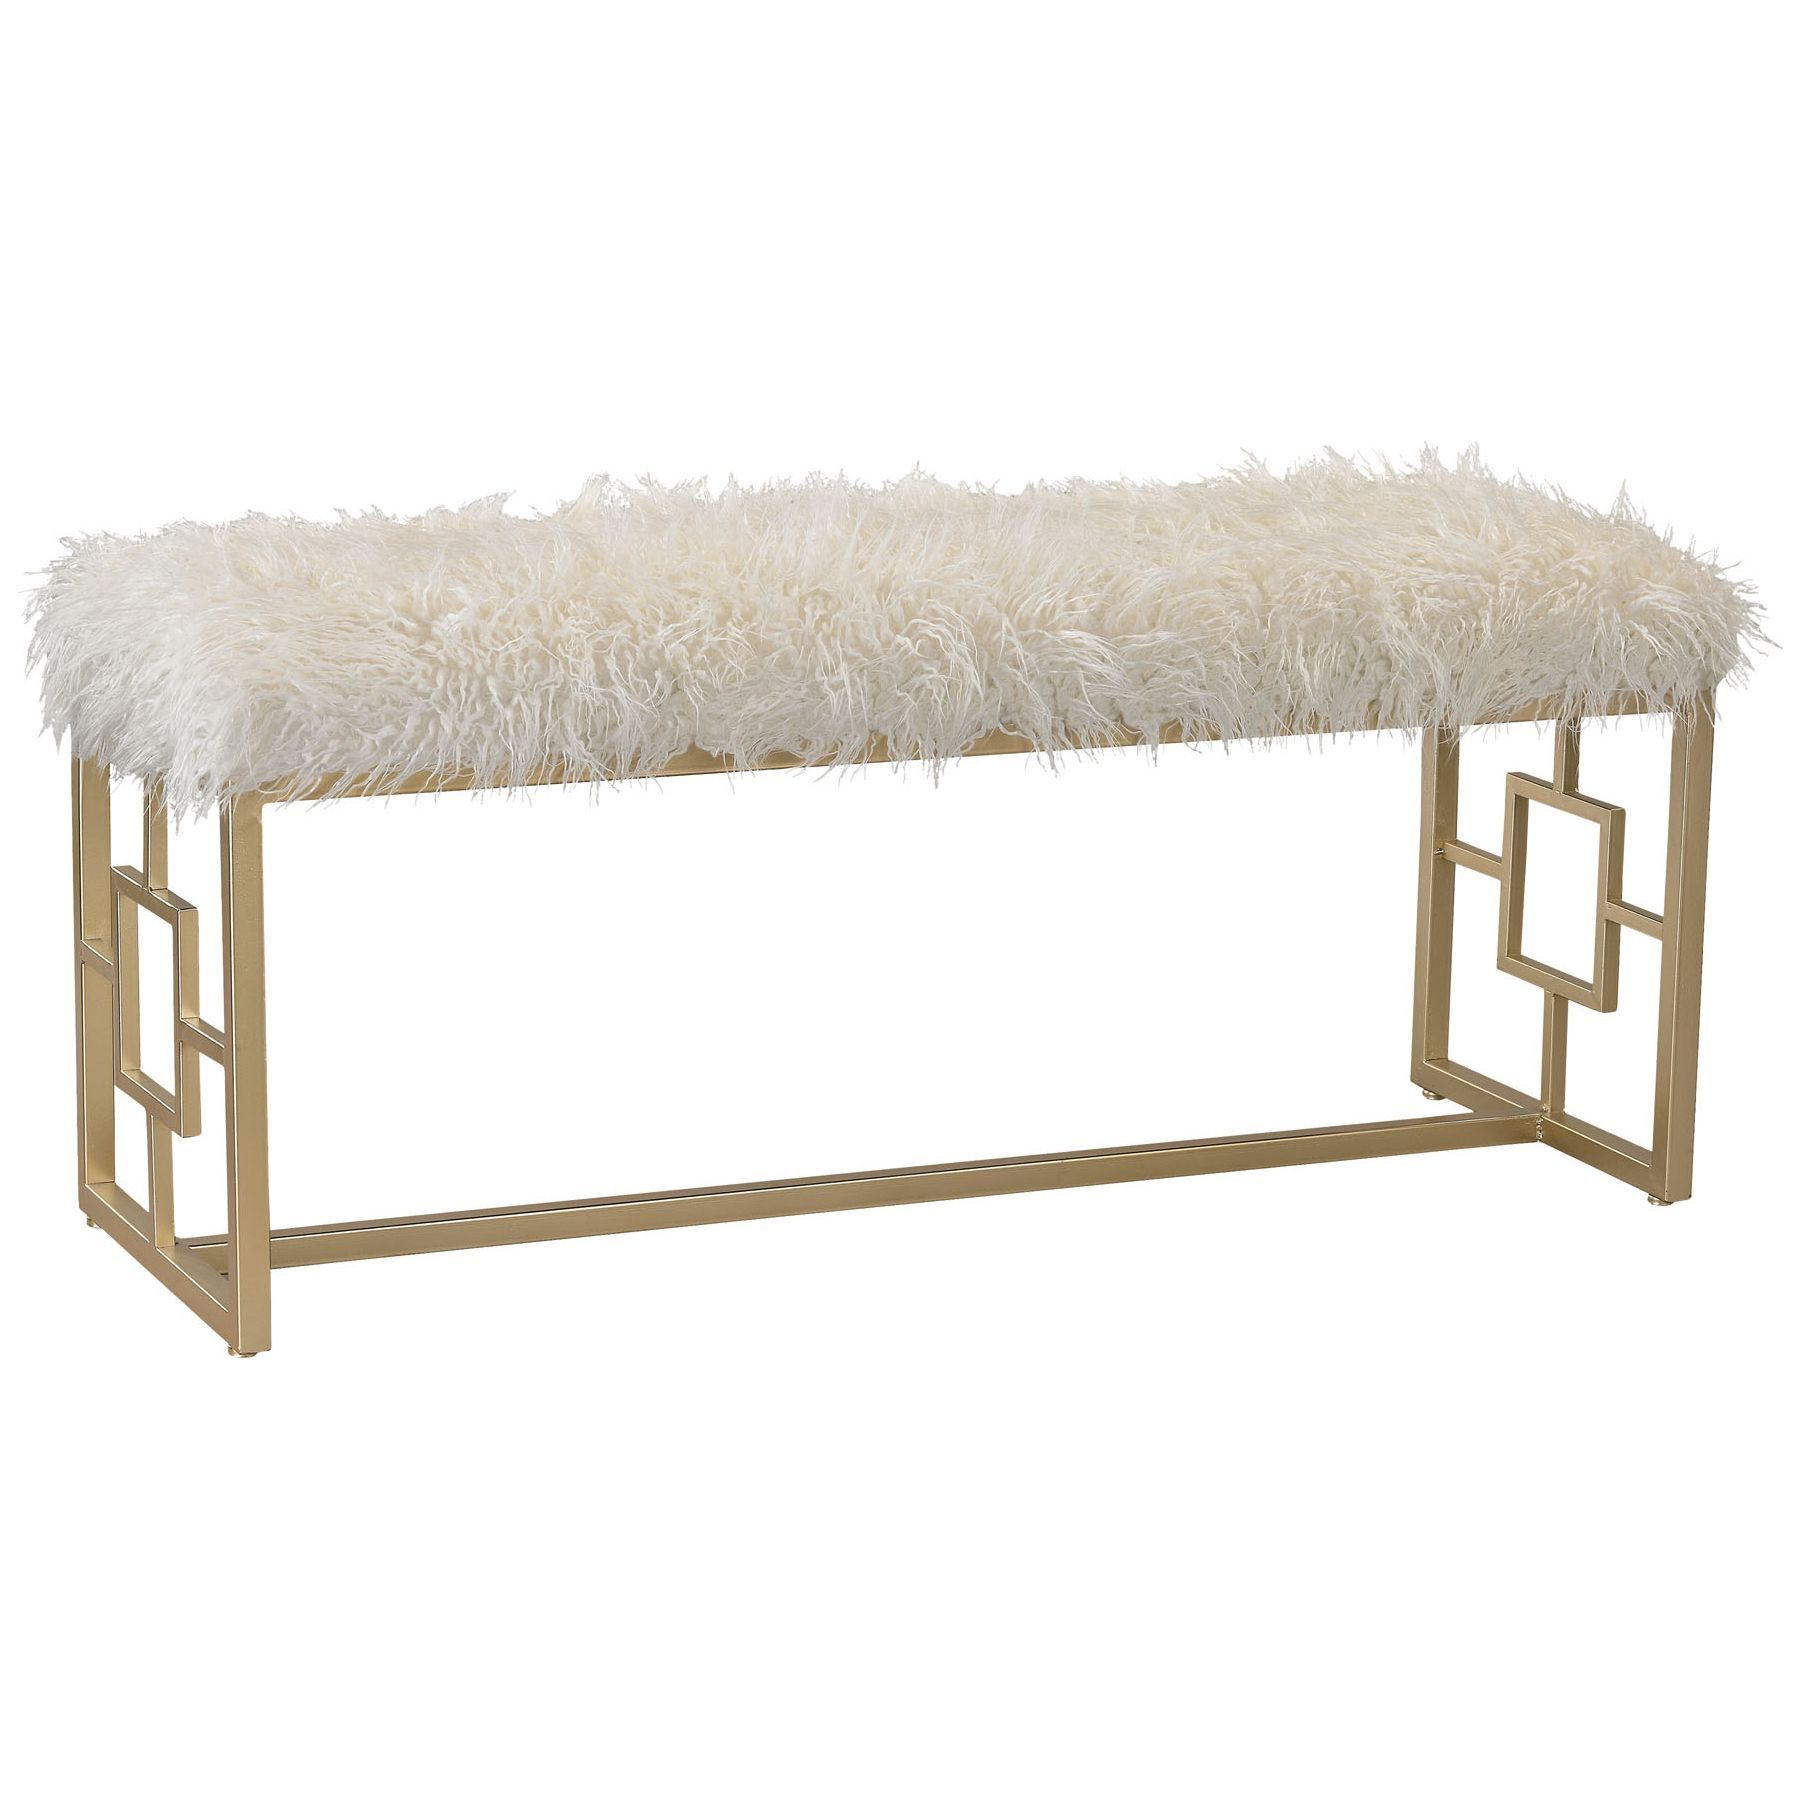 Betty Retro Double Bench In White Faux Fur W Gold Geometric Base By Elk Home Furniture White Bench Gold Bench